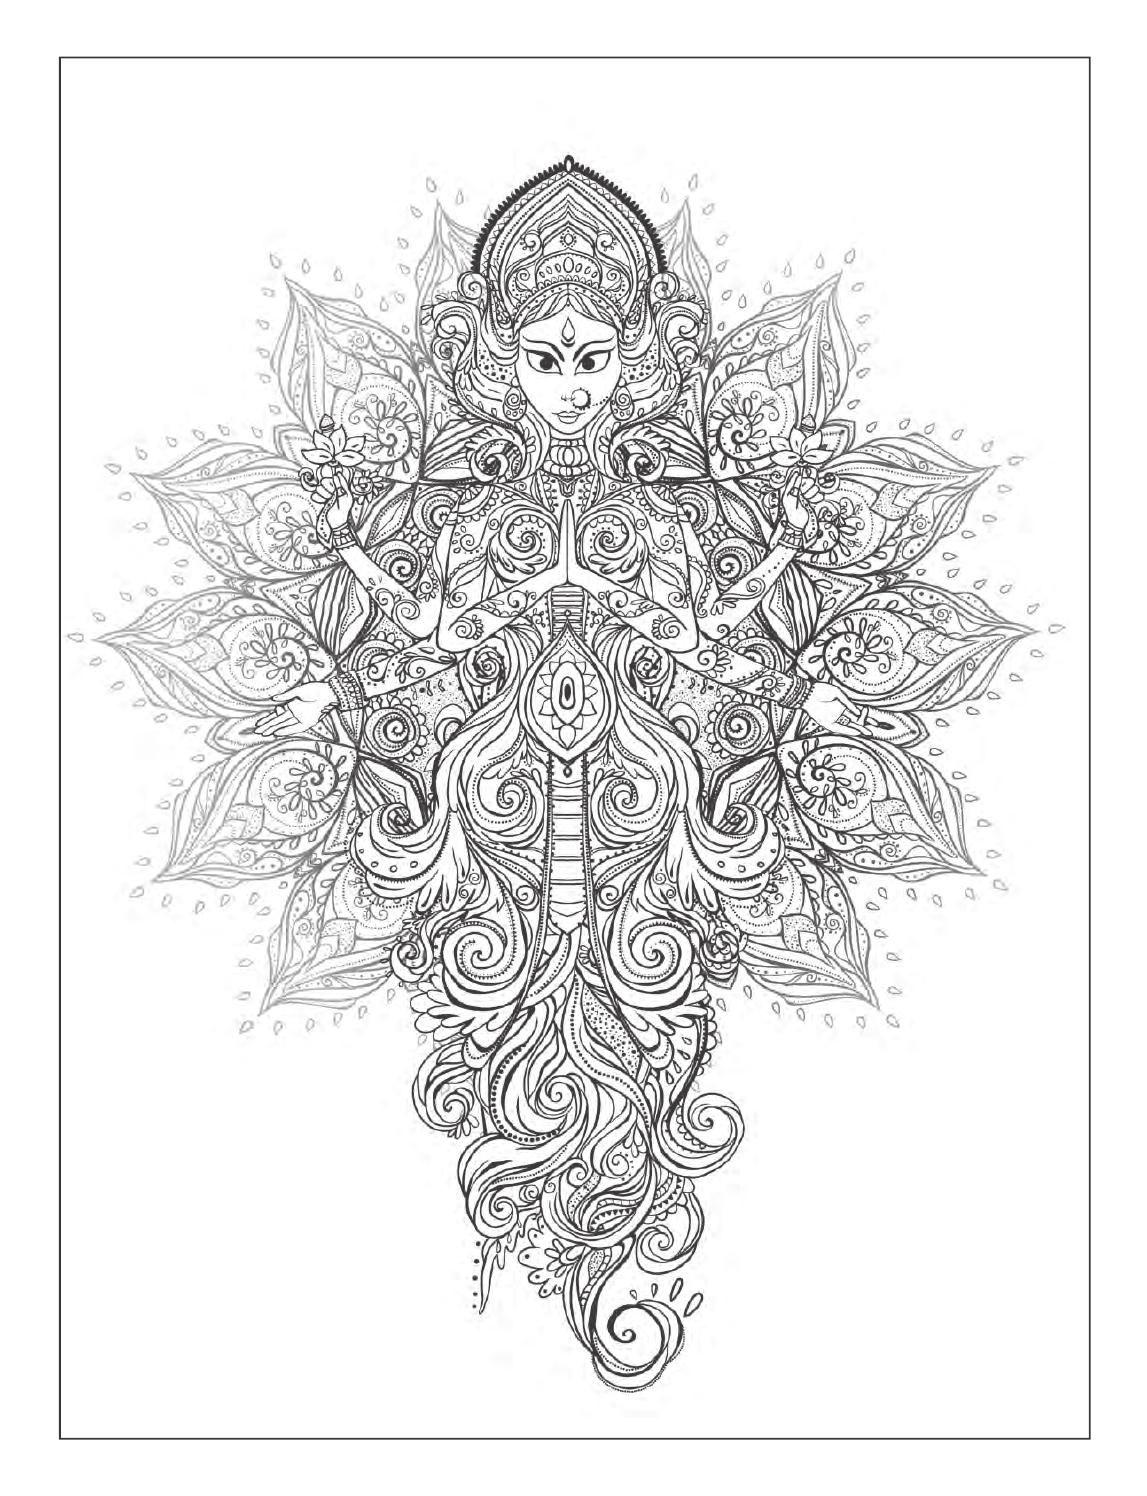 mandala meditation coloring pages new meditative colouring mandala april 2016 pure craft coloring meditation pages mandala